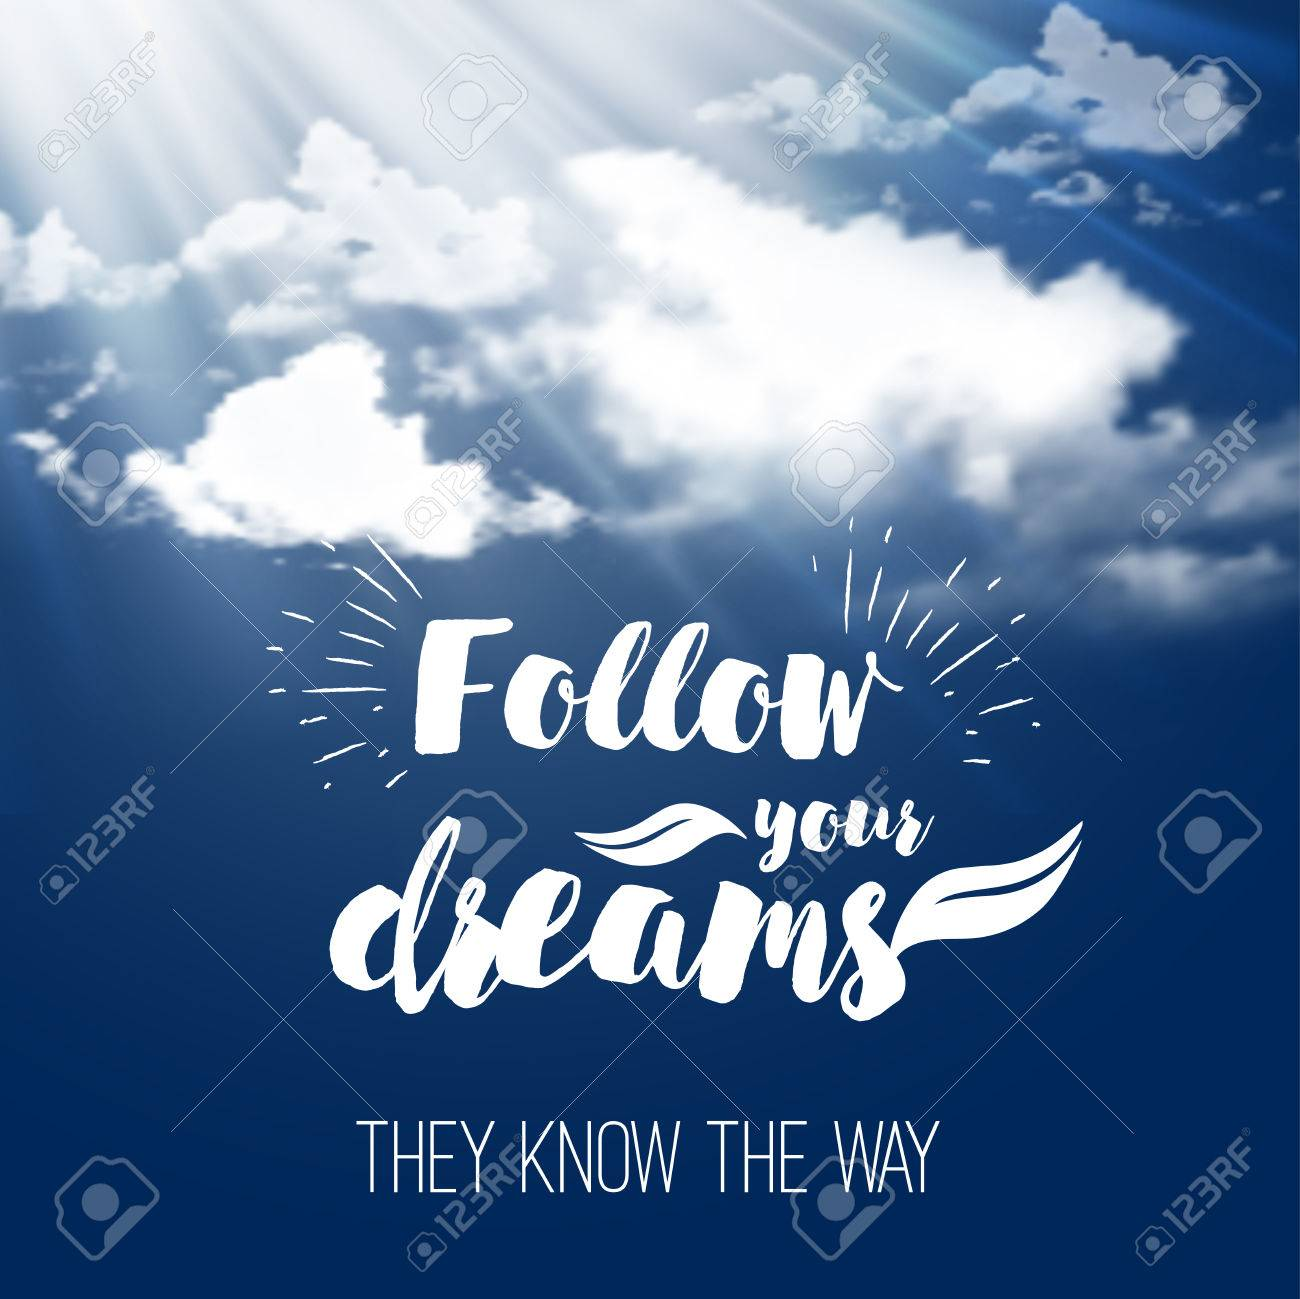 Inspiration Quote Follow Your Dreams On The Sky Background With Fluffy Clouds Motivational Typographic